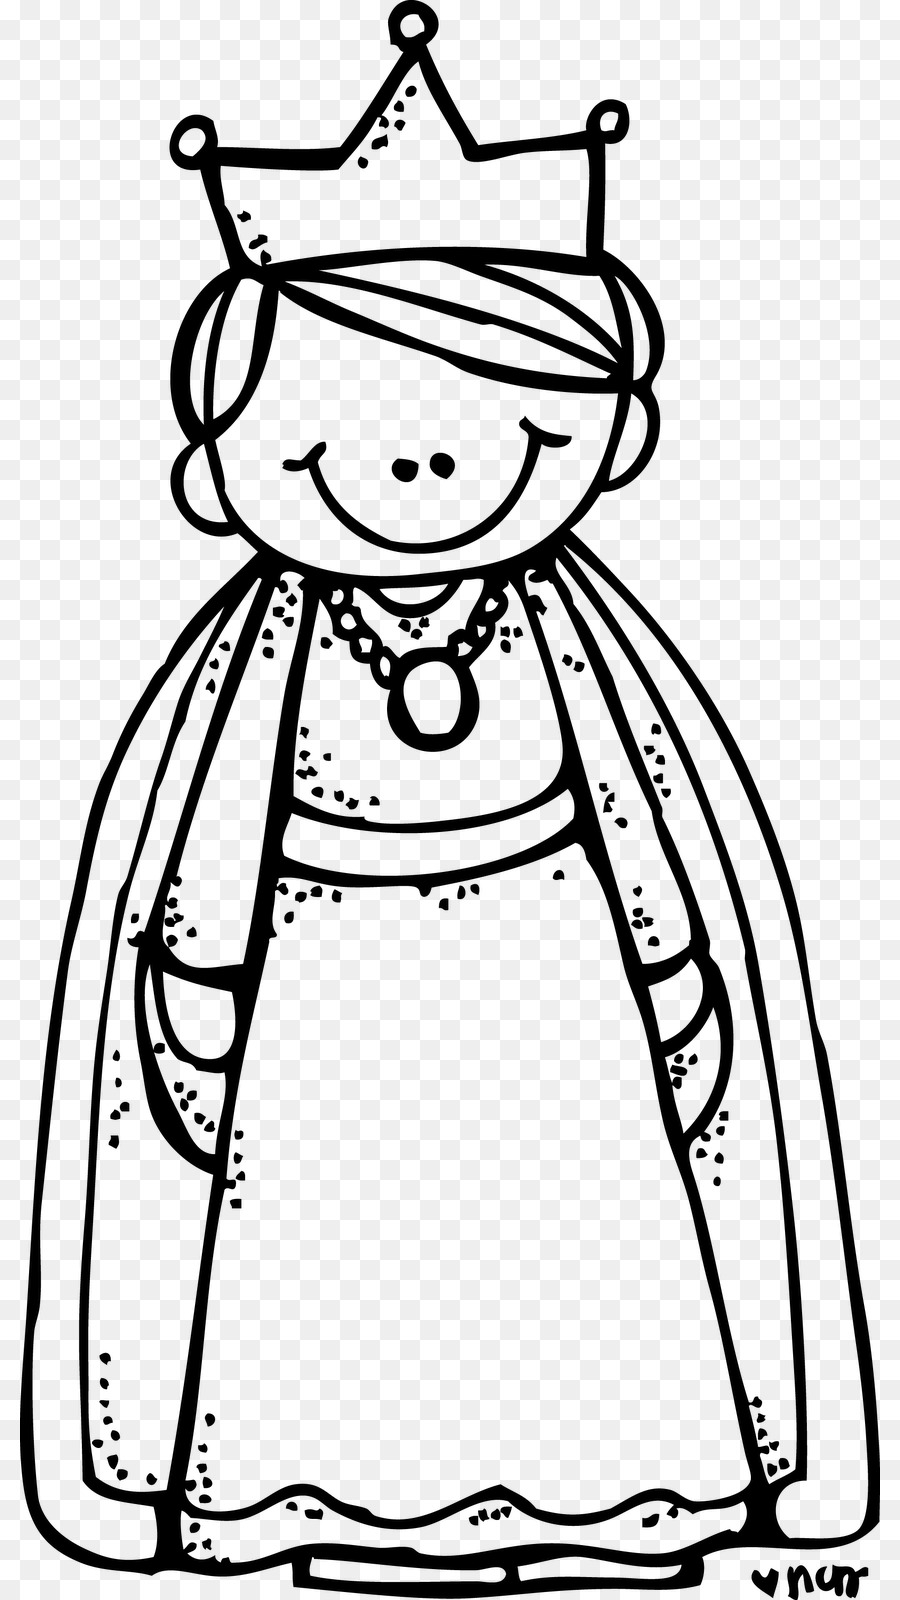 Queen clipart drawing. Book black and white